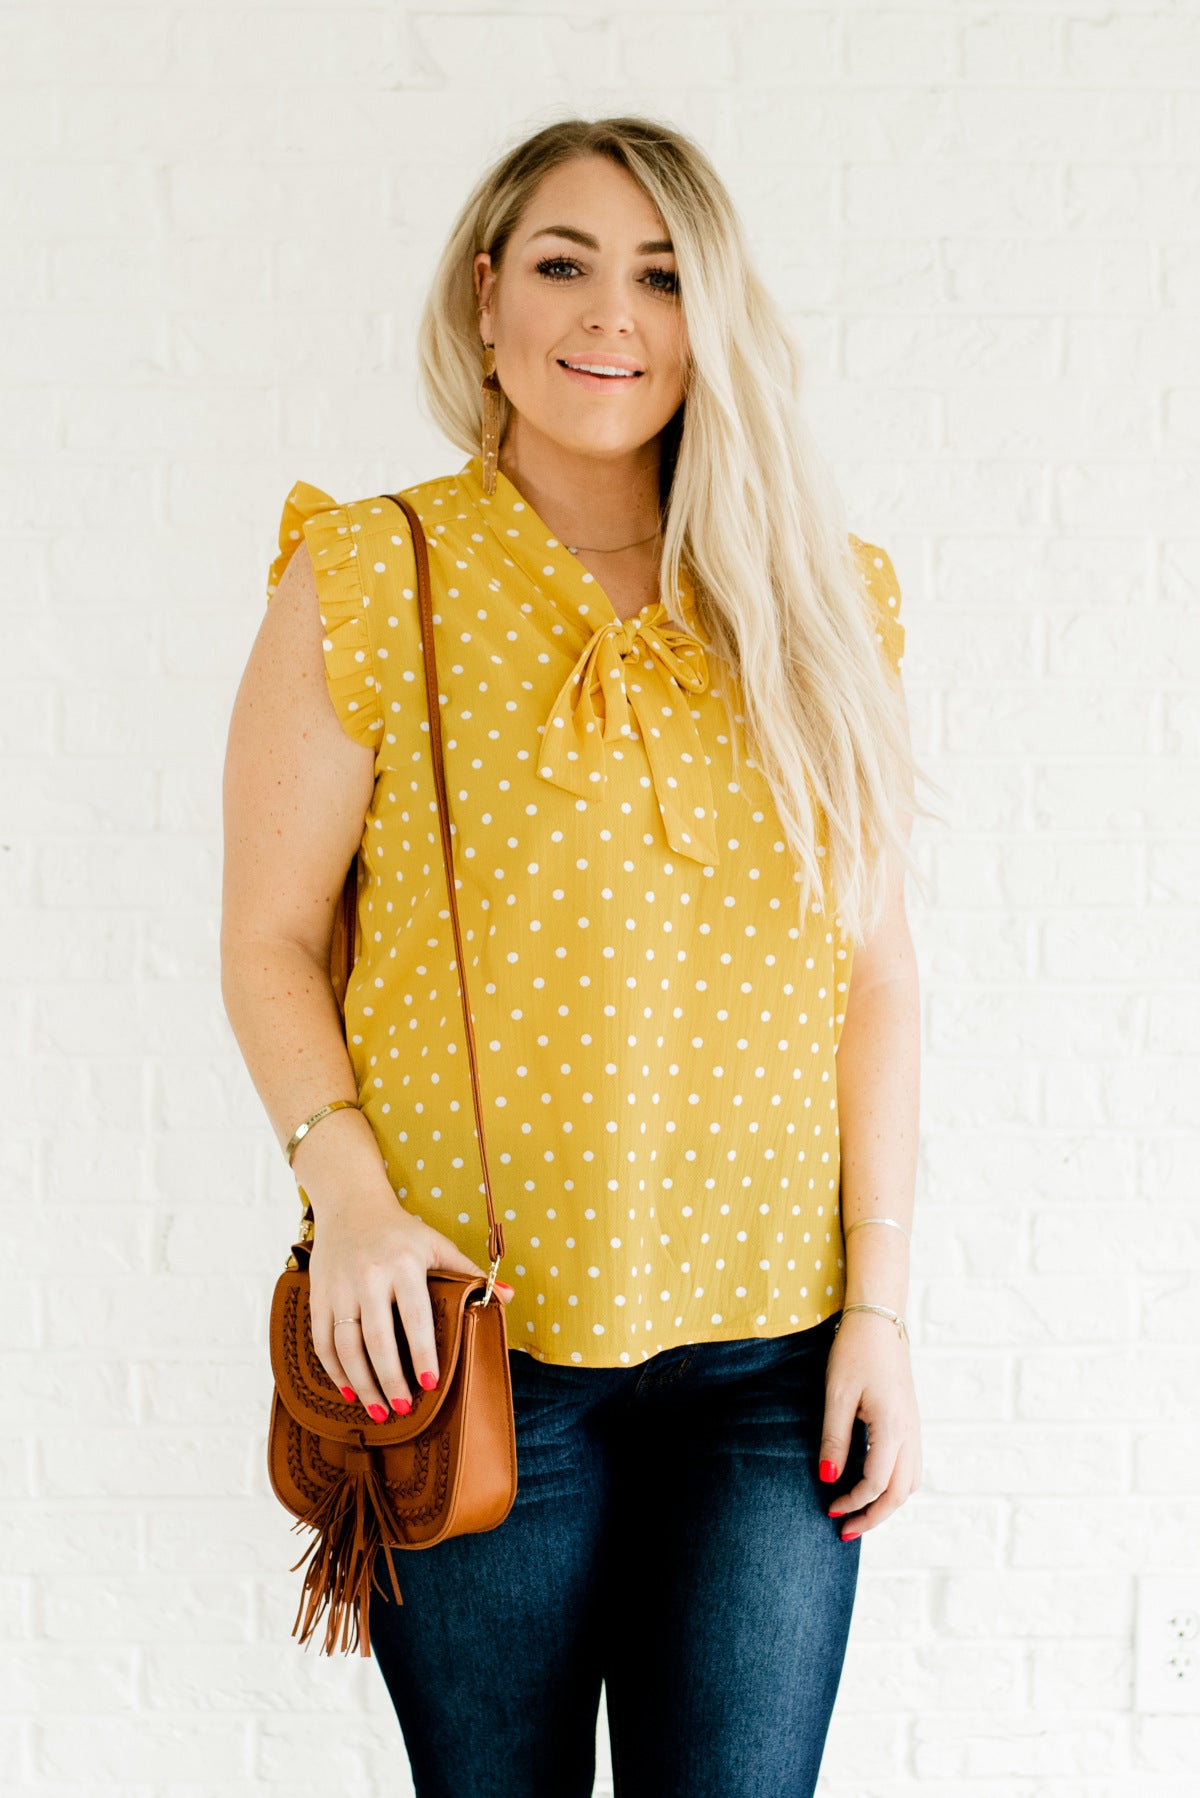 Yellow and White Polka Dot Boutique Plus Size Tops for Women